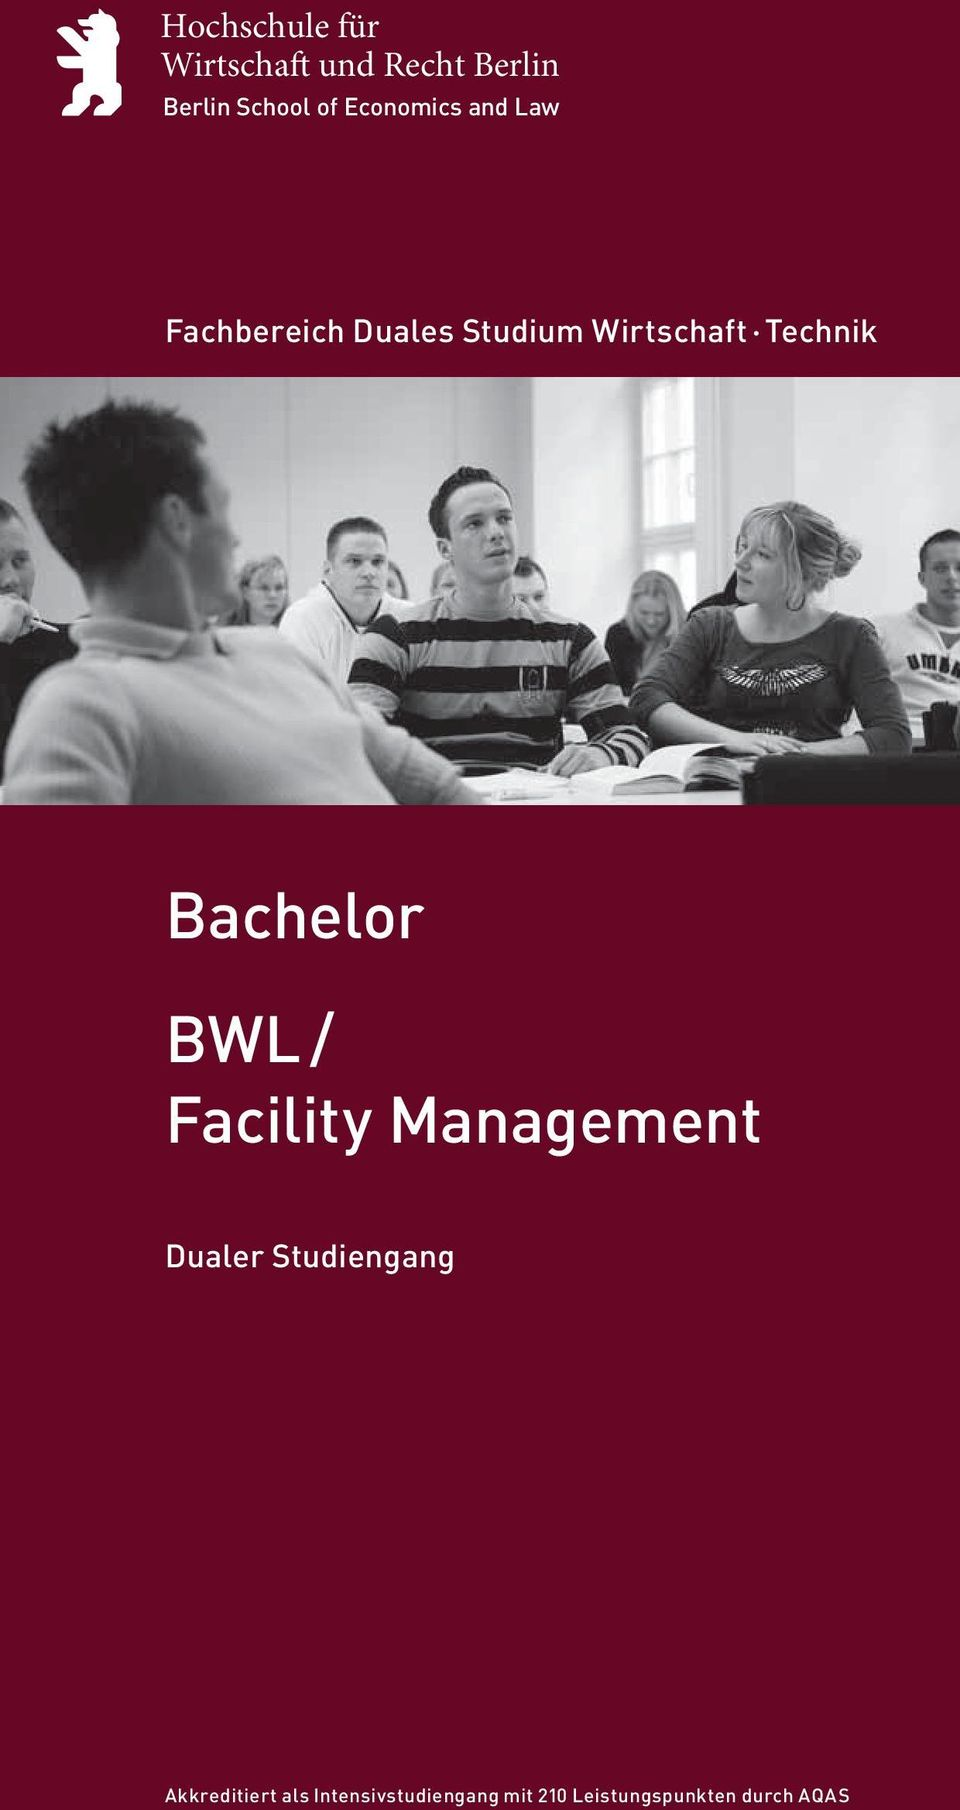 Technik Bachelor BWL / Facility Management Dualer Studiengang